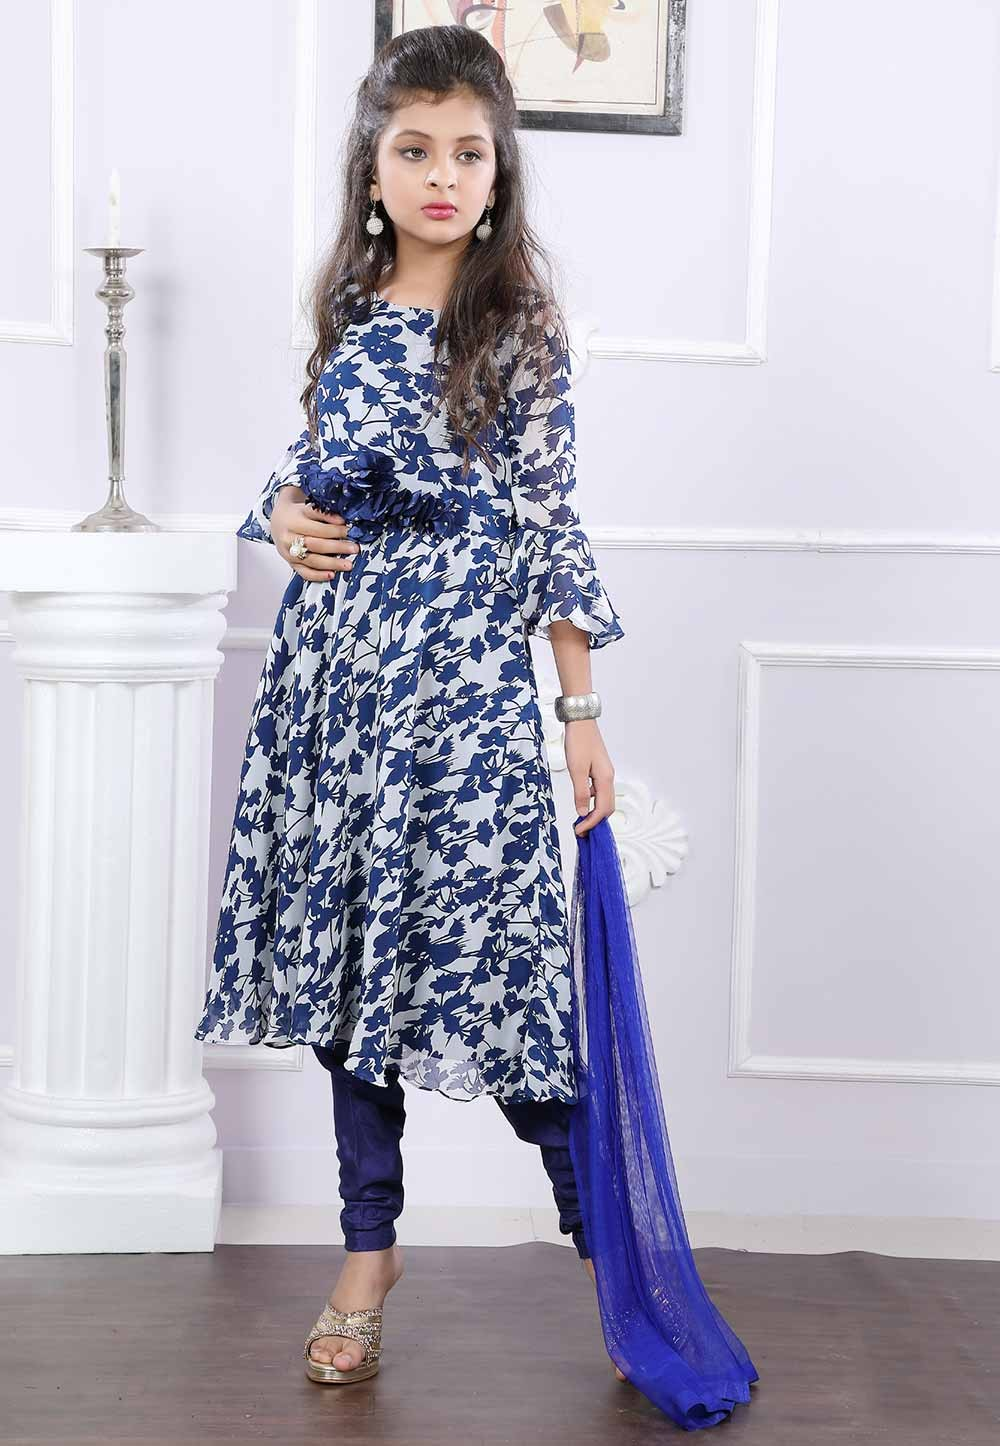 Girl's Off White,Blue Colour Salwar Kameez.